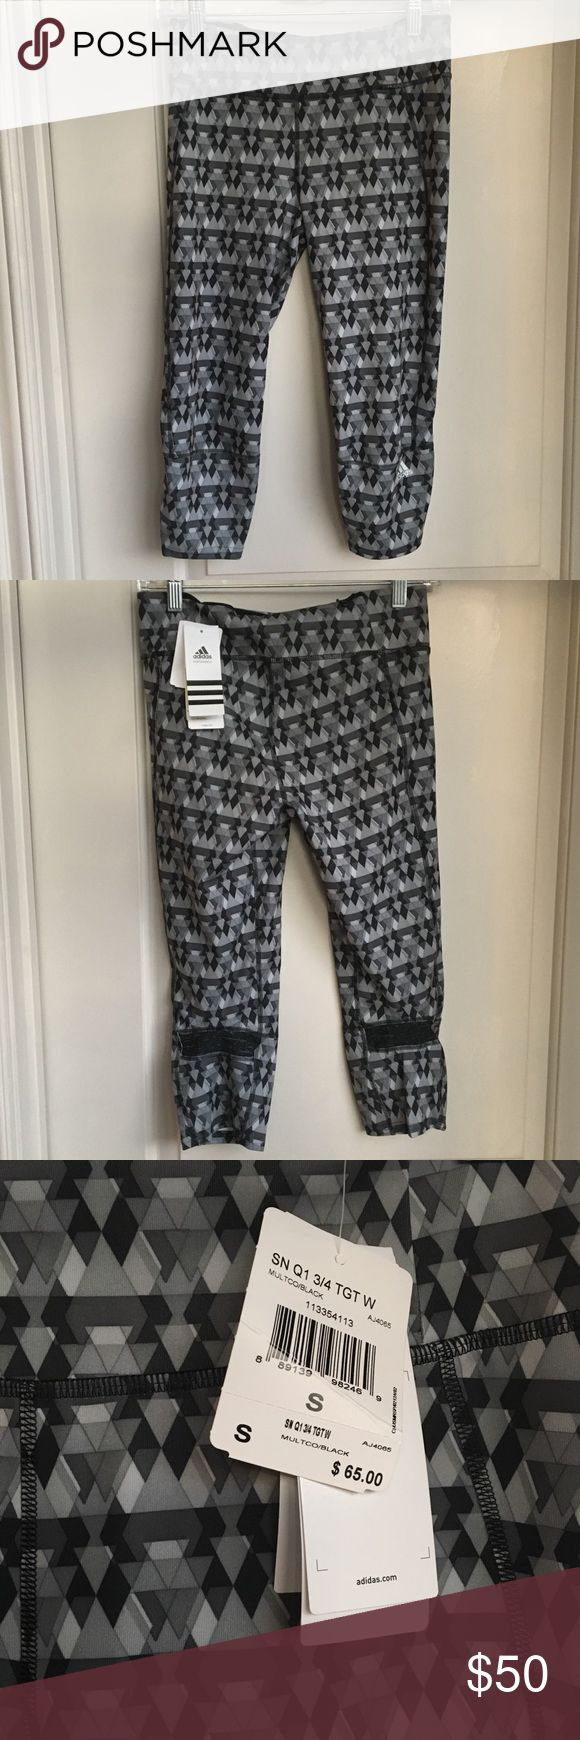 """Adidas Supernova Capri Adidas Supernova capris. Black, white, and gray triangle pattern. NWT! Size small. Extra wide waistband.   Measurements:  Waist: 13"""" Rise: 9.5""""  Inseam: 18.25"""" adidas Pants Capris"""